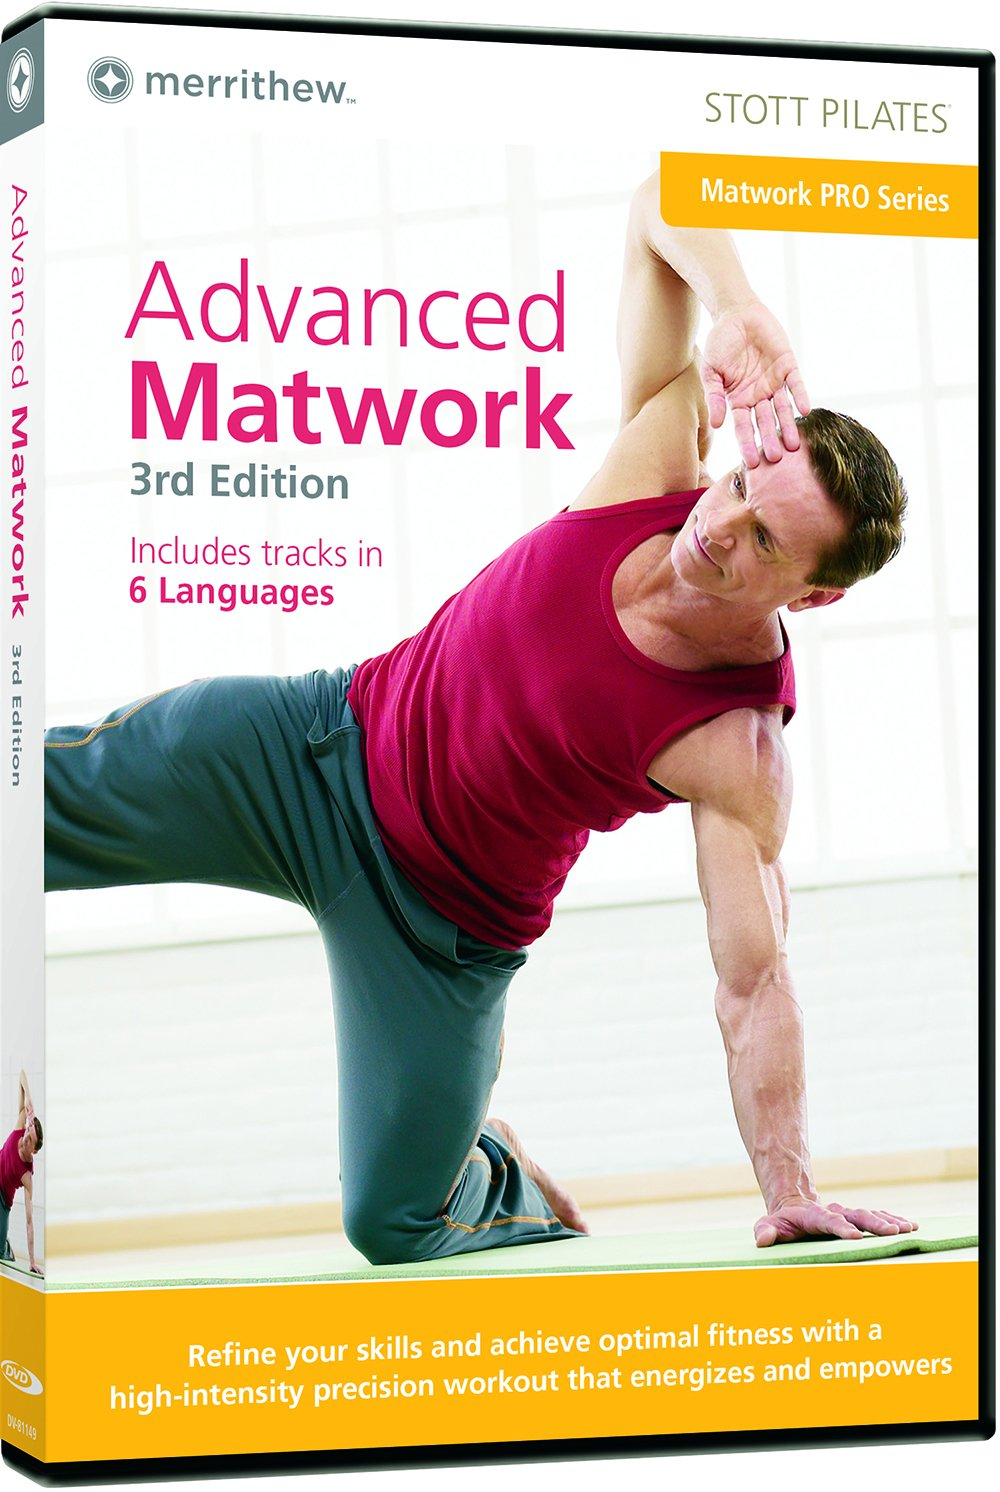 STOTT PILATES Advanced (6 Languages) Moira Stott Stott Pilates: Advanced Cadillac 2nd Edition DV-81141 Fitness/Self-Help Movie